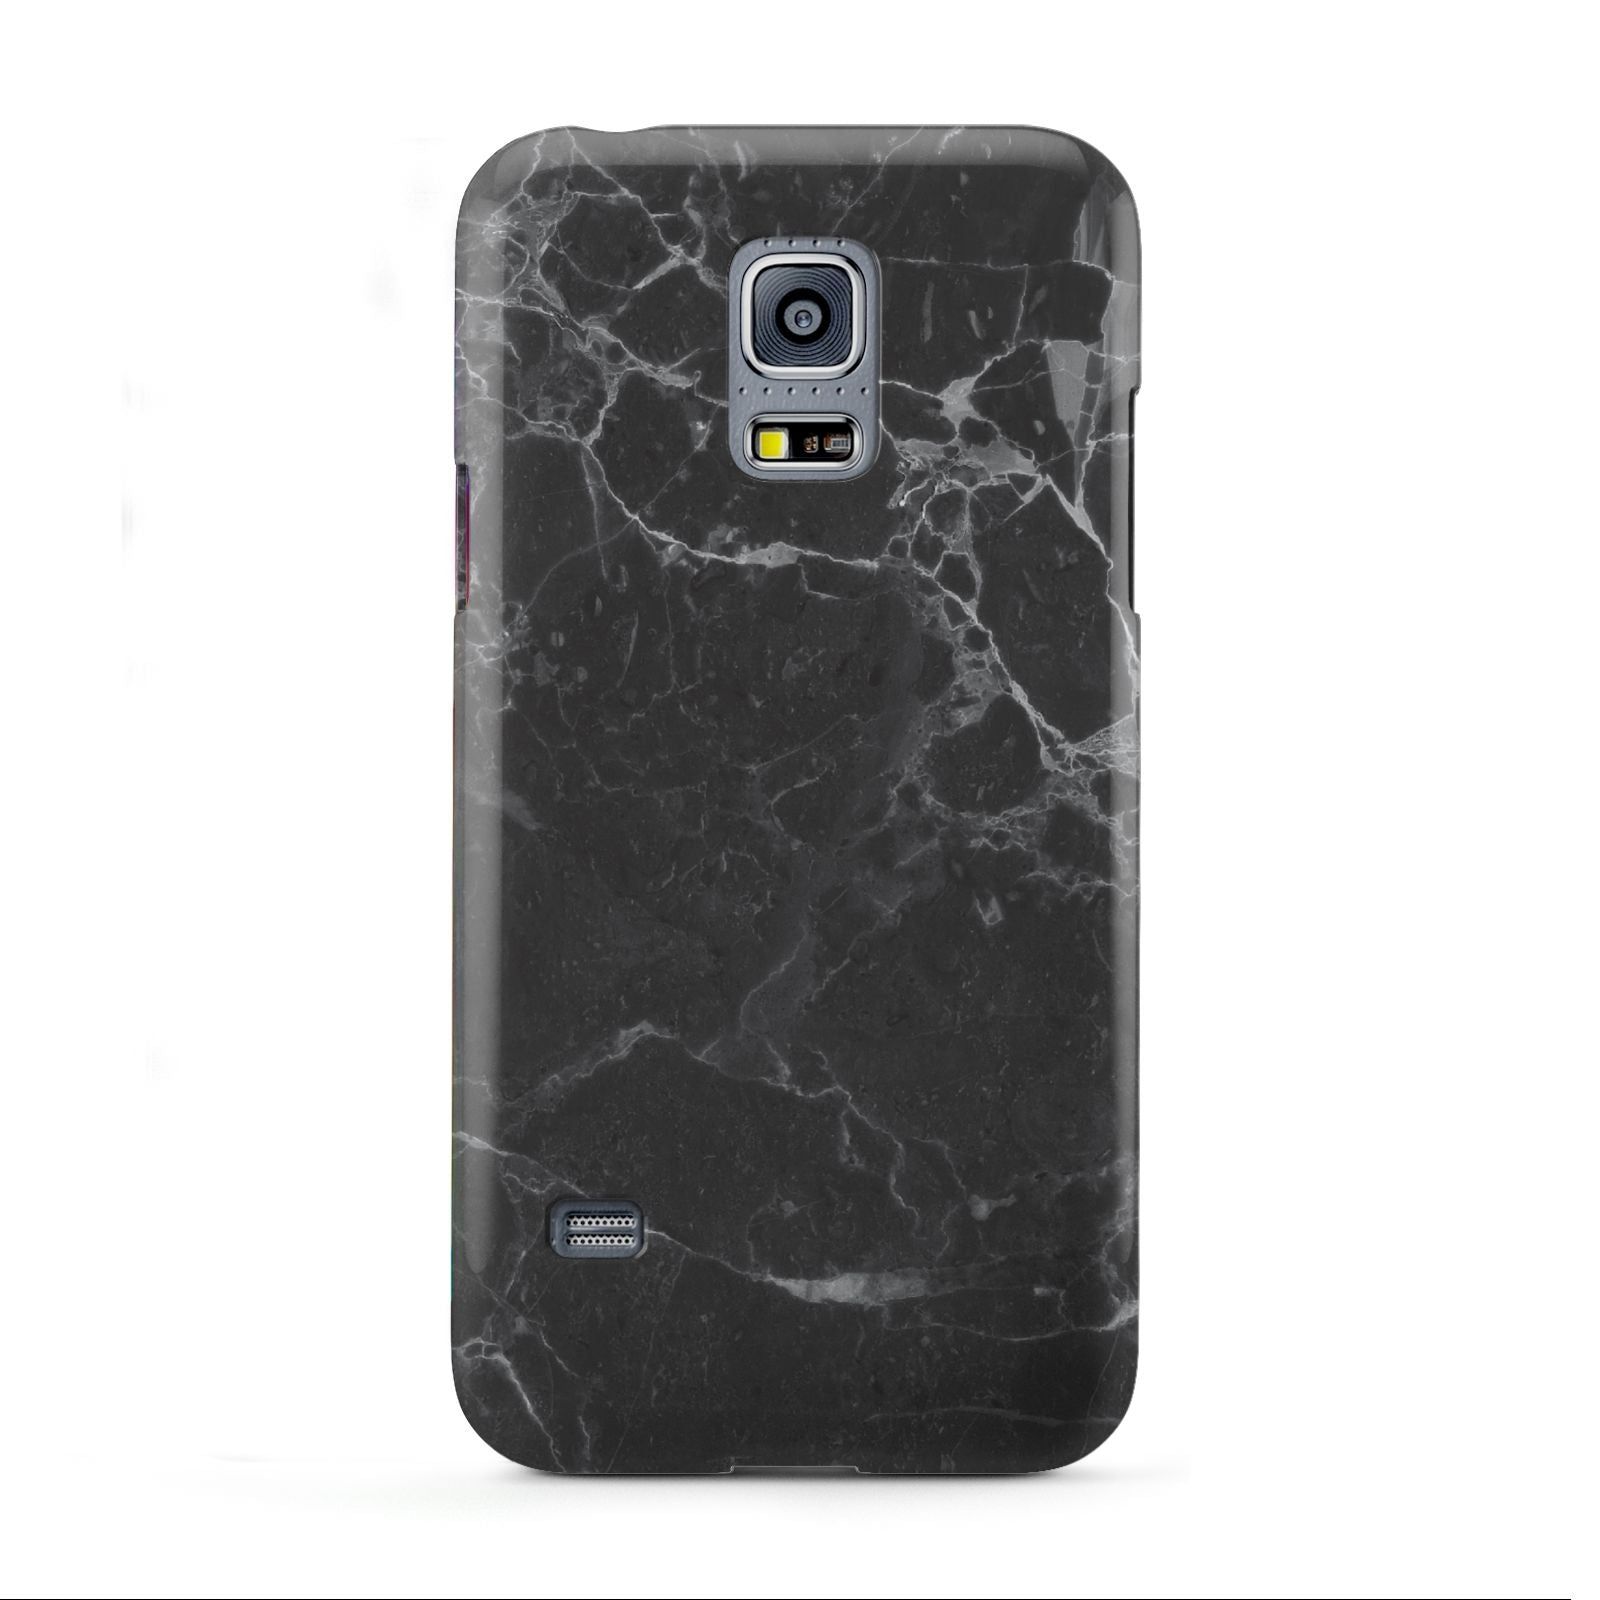 Faux Marble Effect Black Samsung Galaxy S5 Mini Case